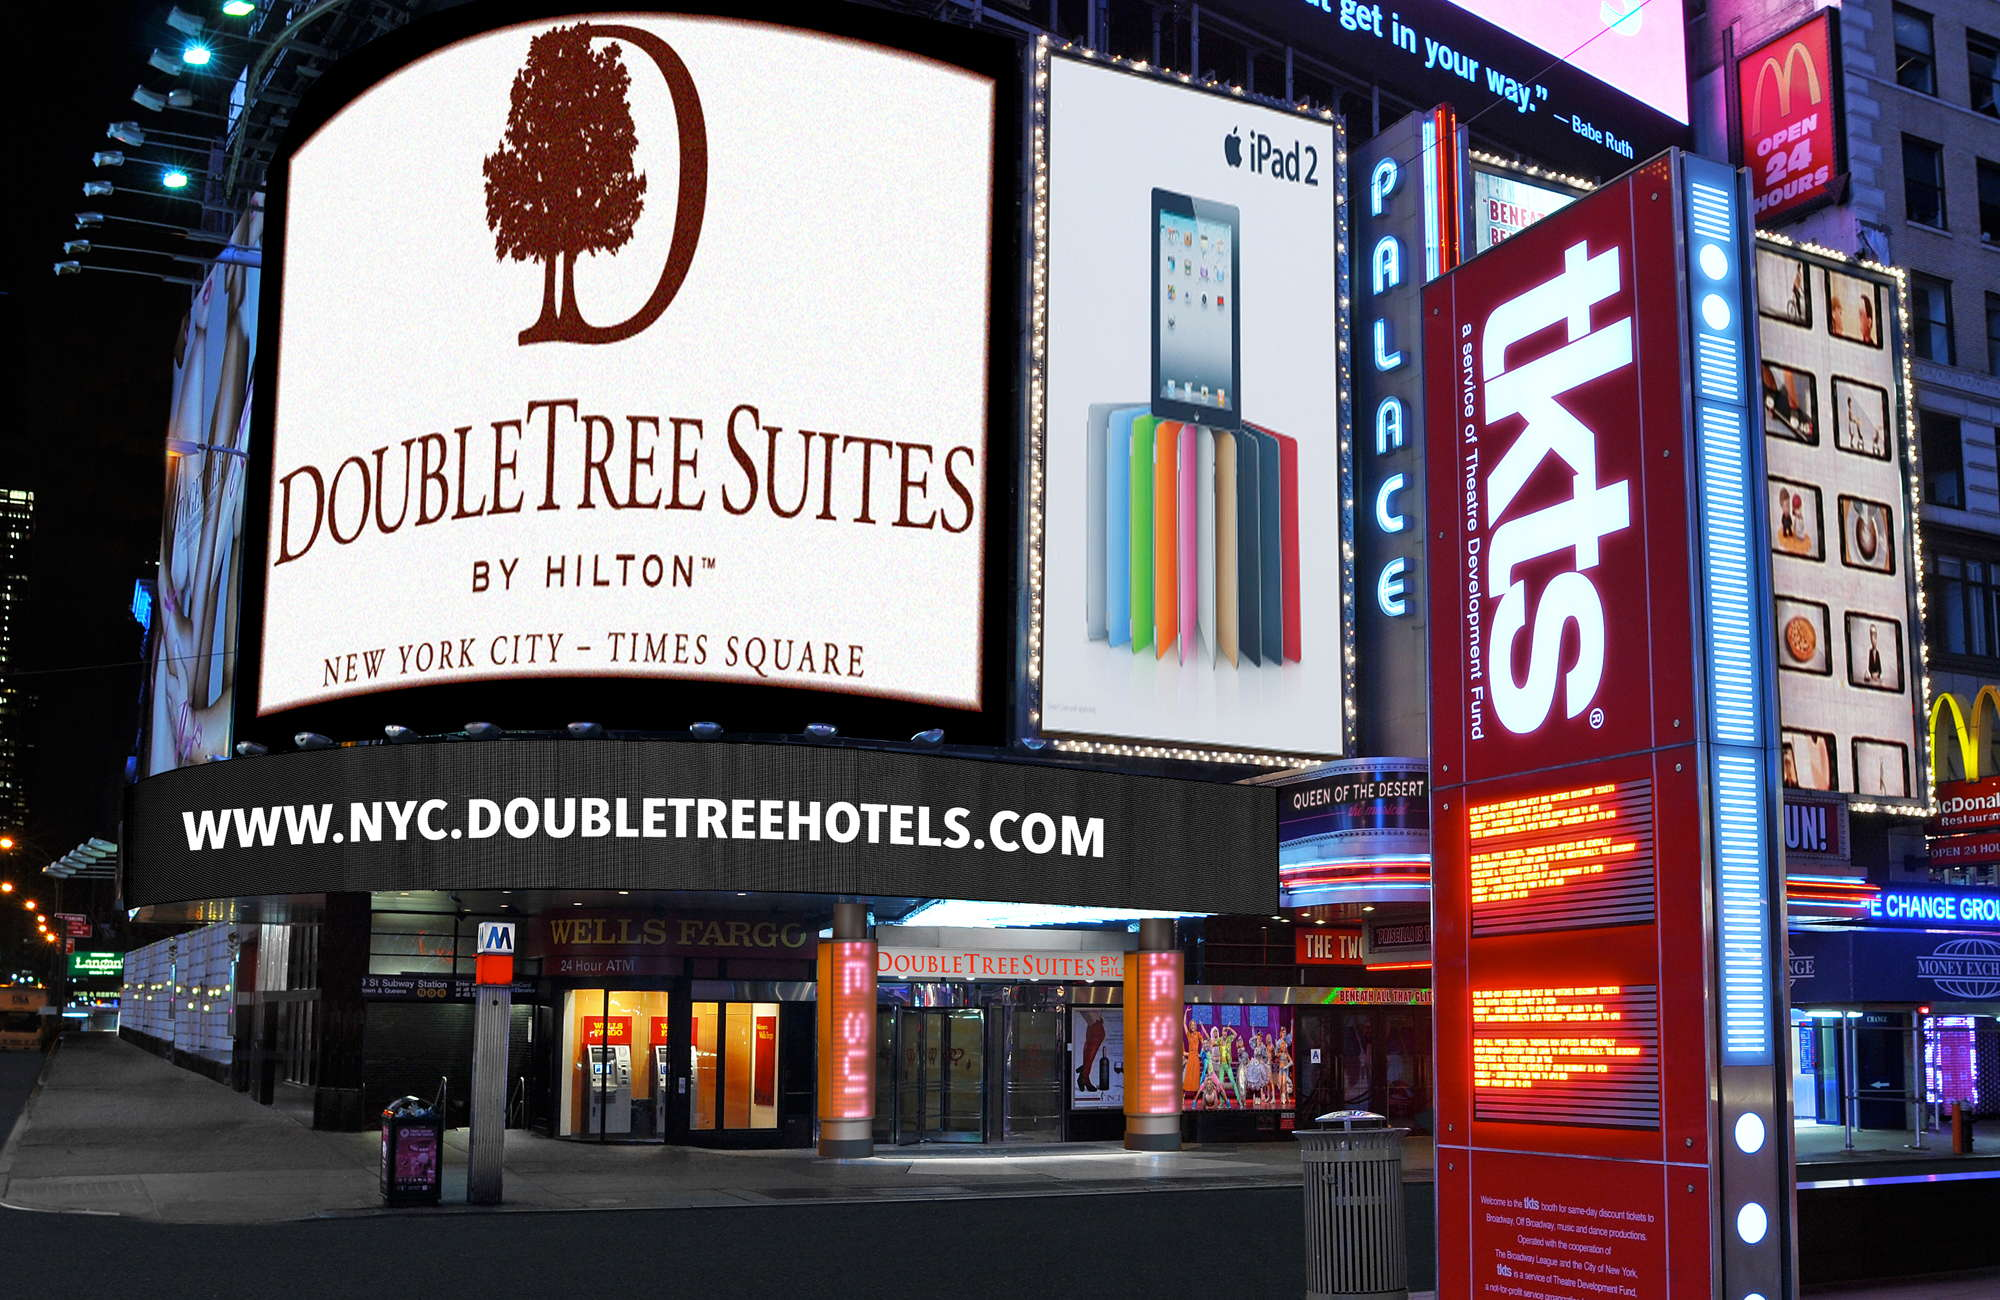 Doubletree Suites By Hilton Hotel New York City Times Square Expert Review Fodor S Travel